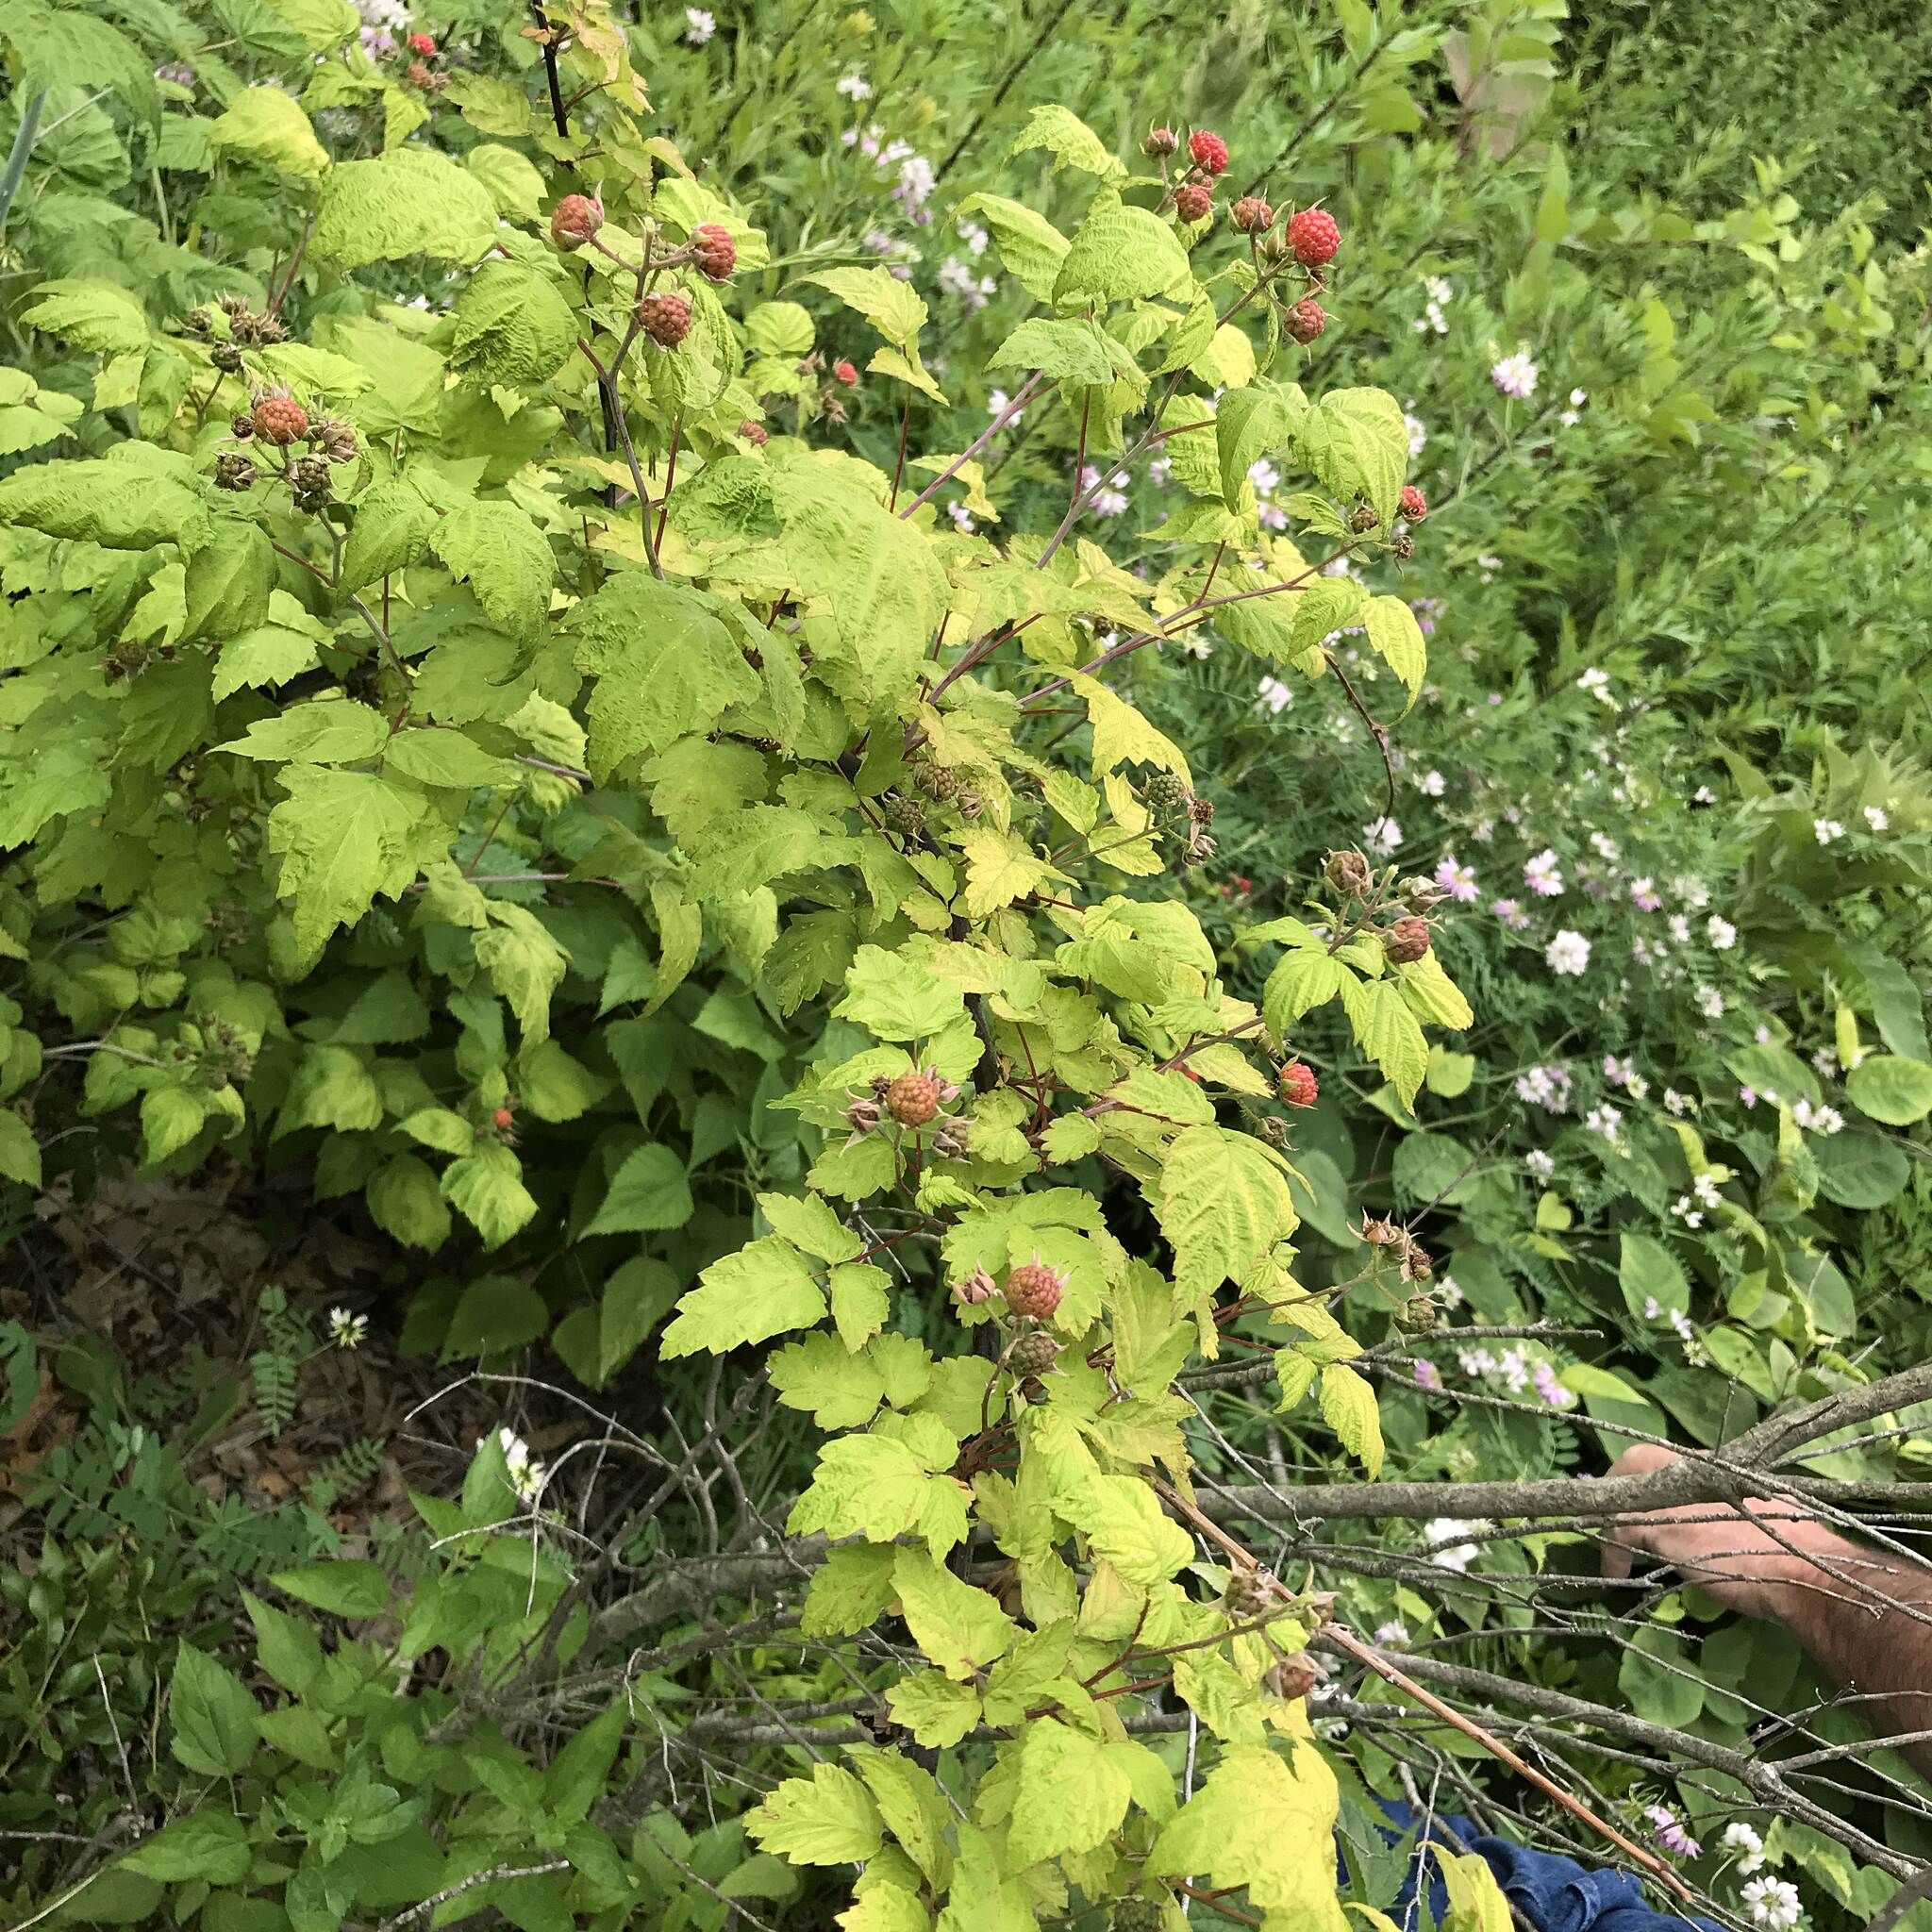 Fred Lippitt Woonasquatucket River Greenway Woonasquatucket Greenway  ( Raspberries ) Woonasquatucket River Greenway Providence Rhode Island